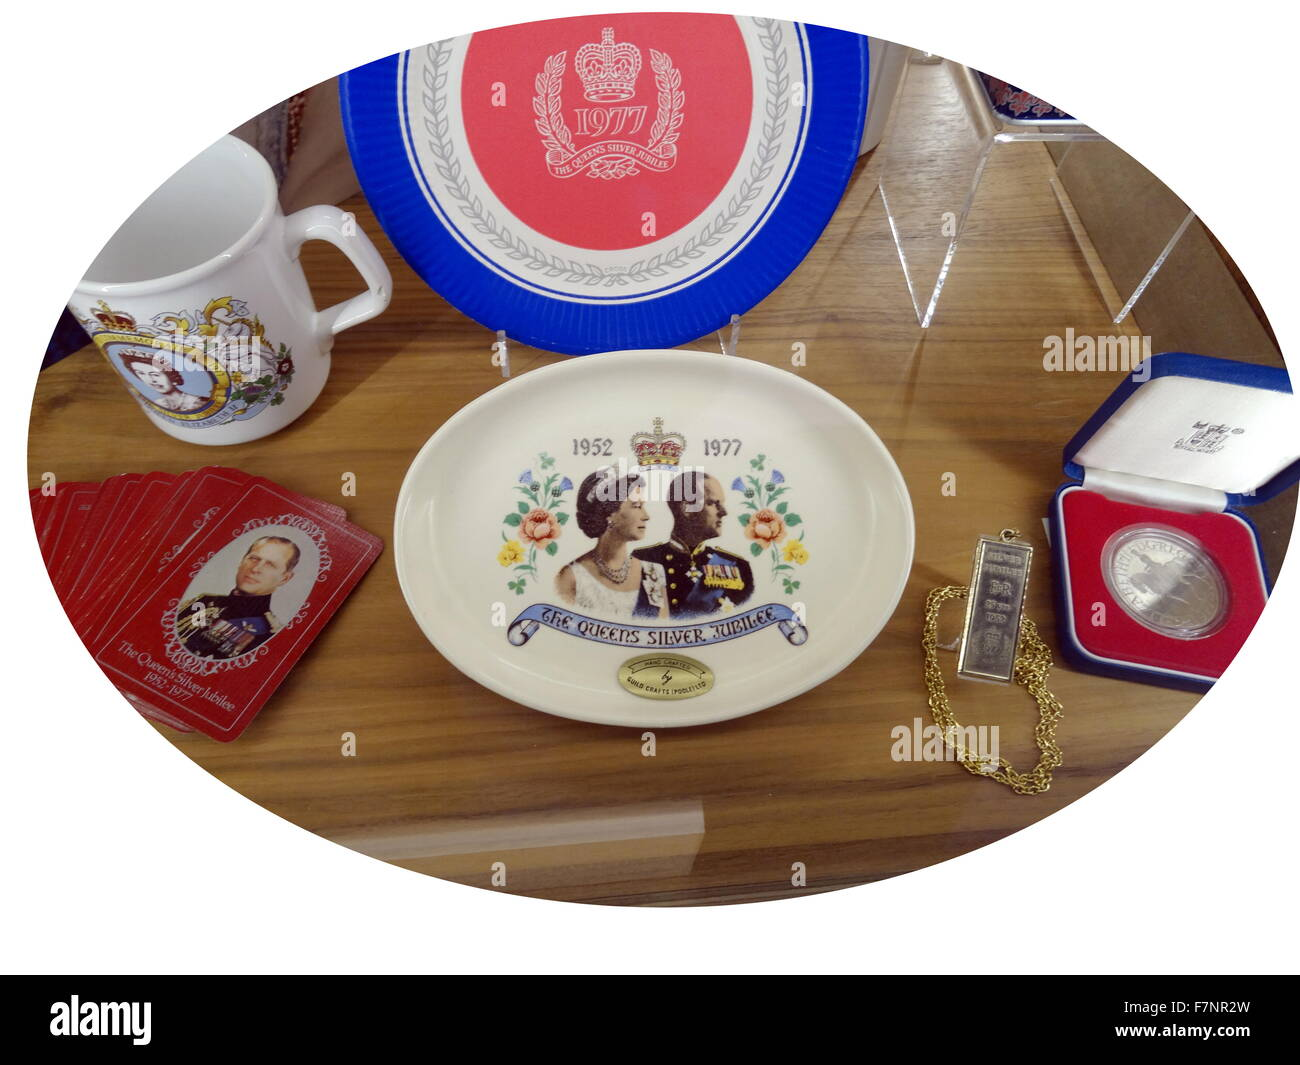 Commemorative platter for the Queen's Silver Jubilee. Dated 1977 - Stock Image